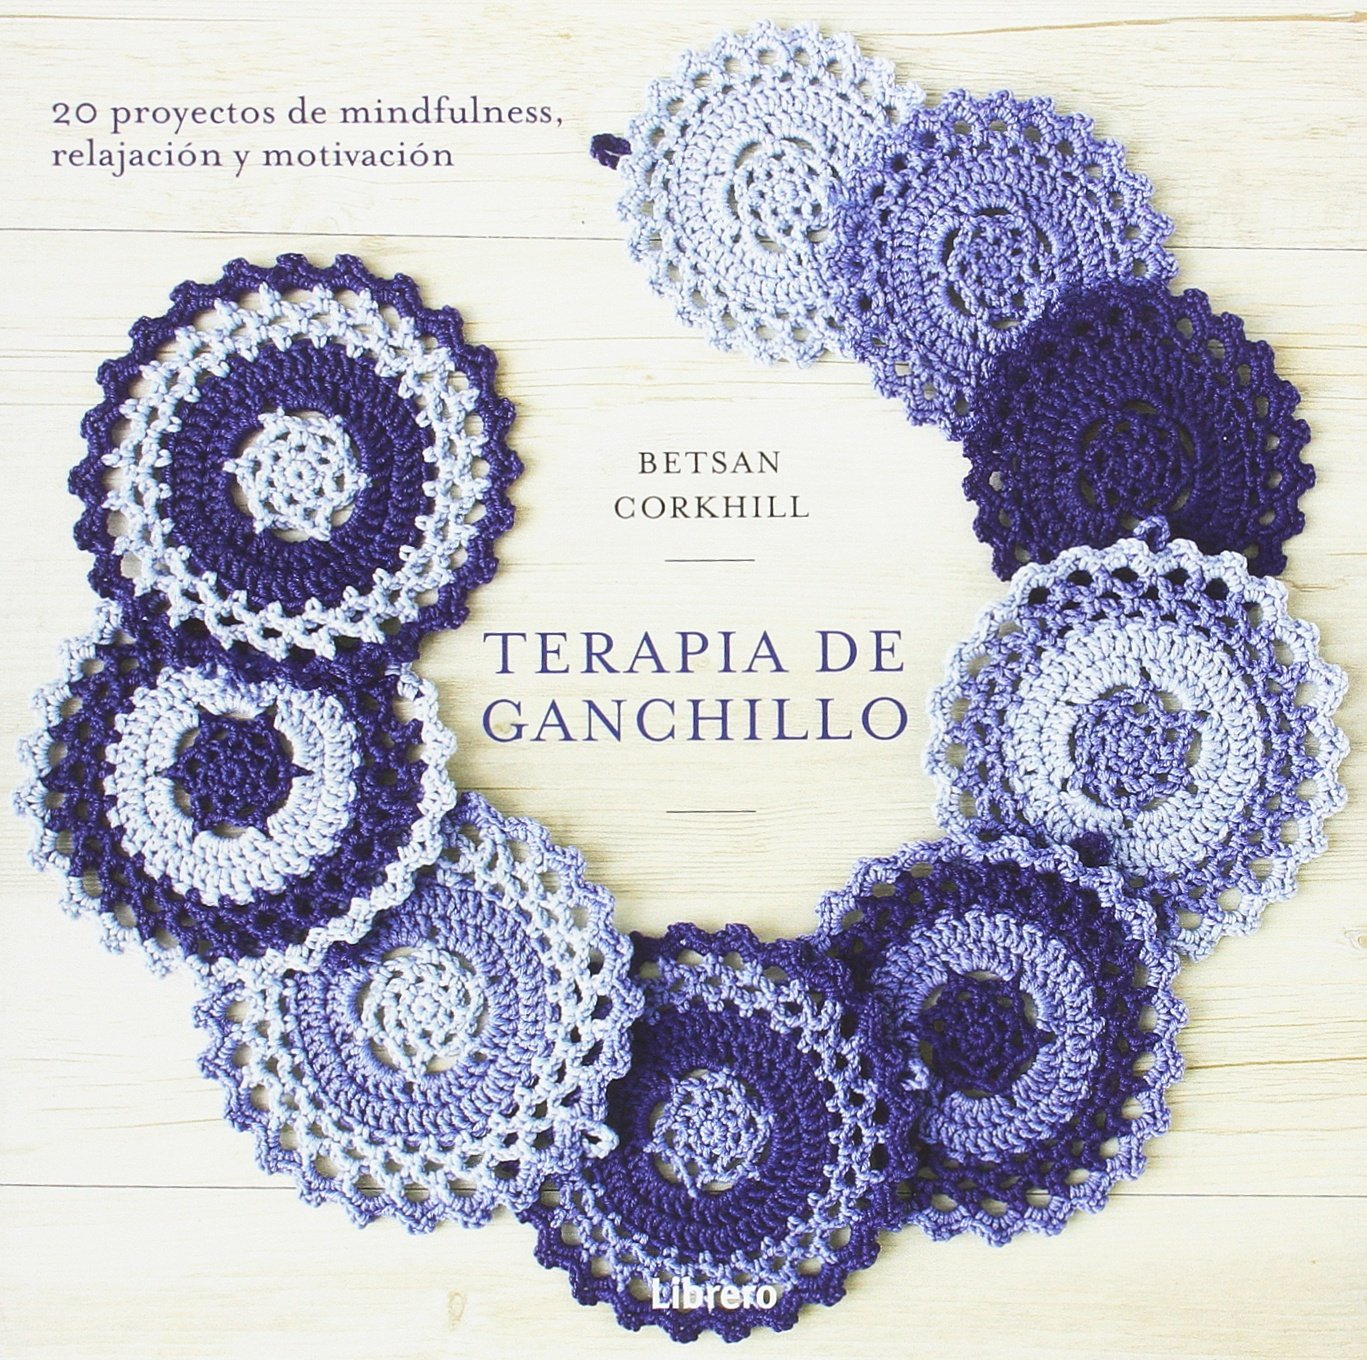 Terapia Mindfulness con Ganchillo: Amazon.es: Bertsan Corkhill: Libros